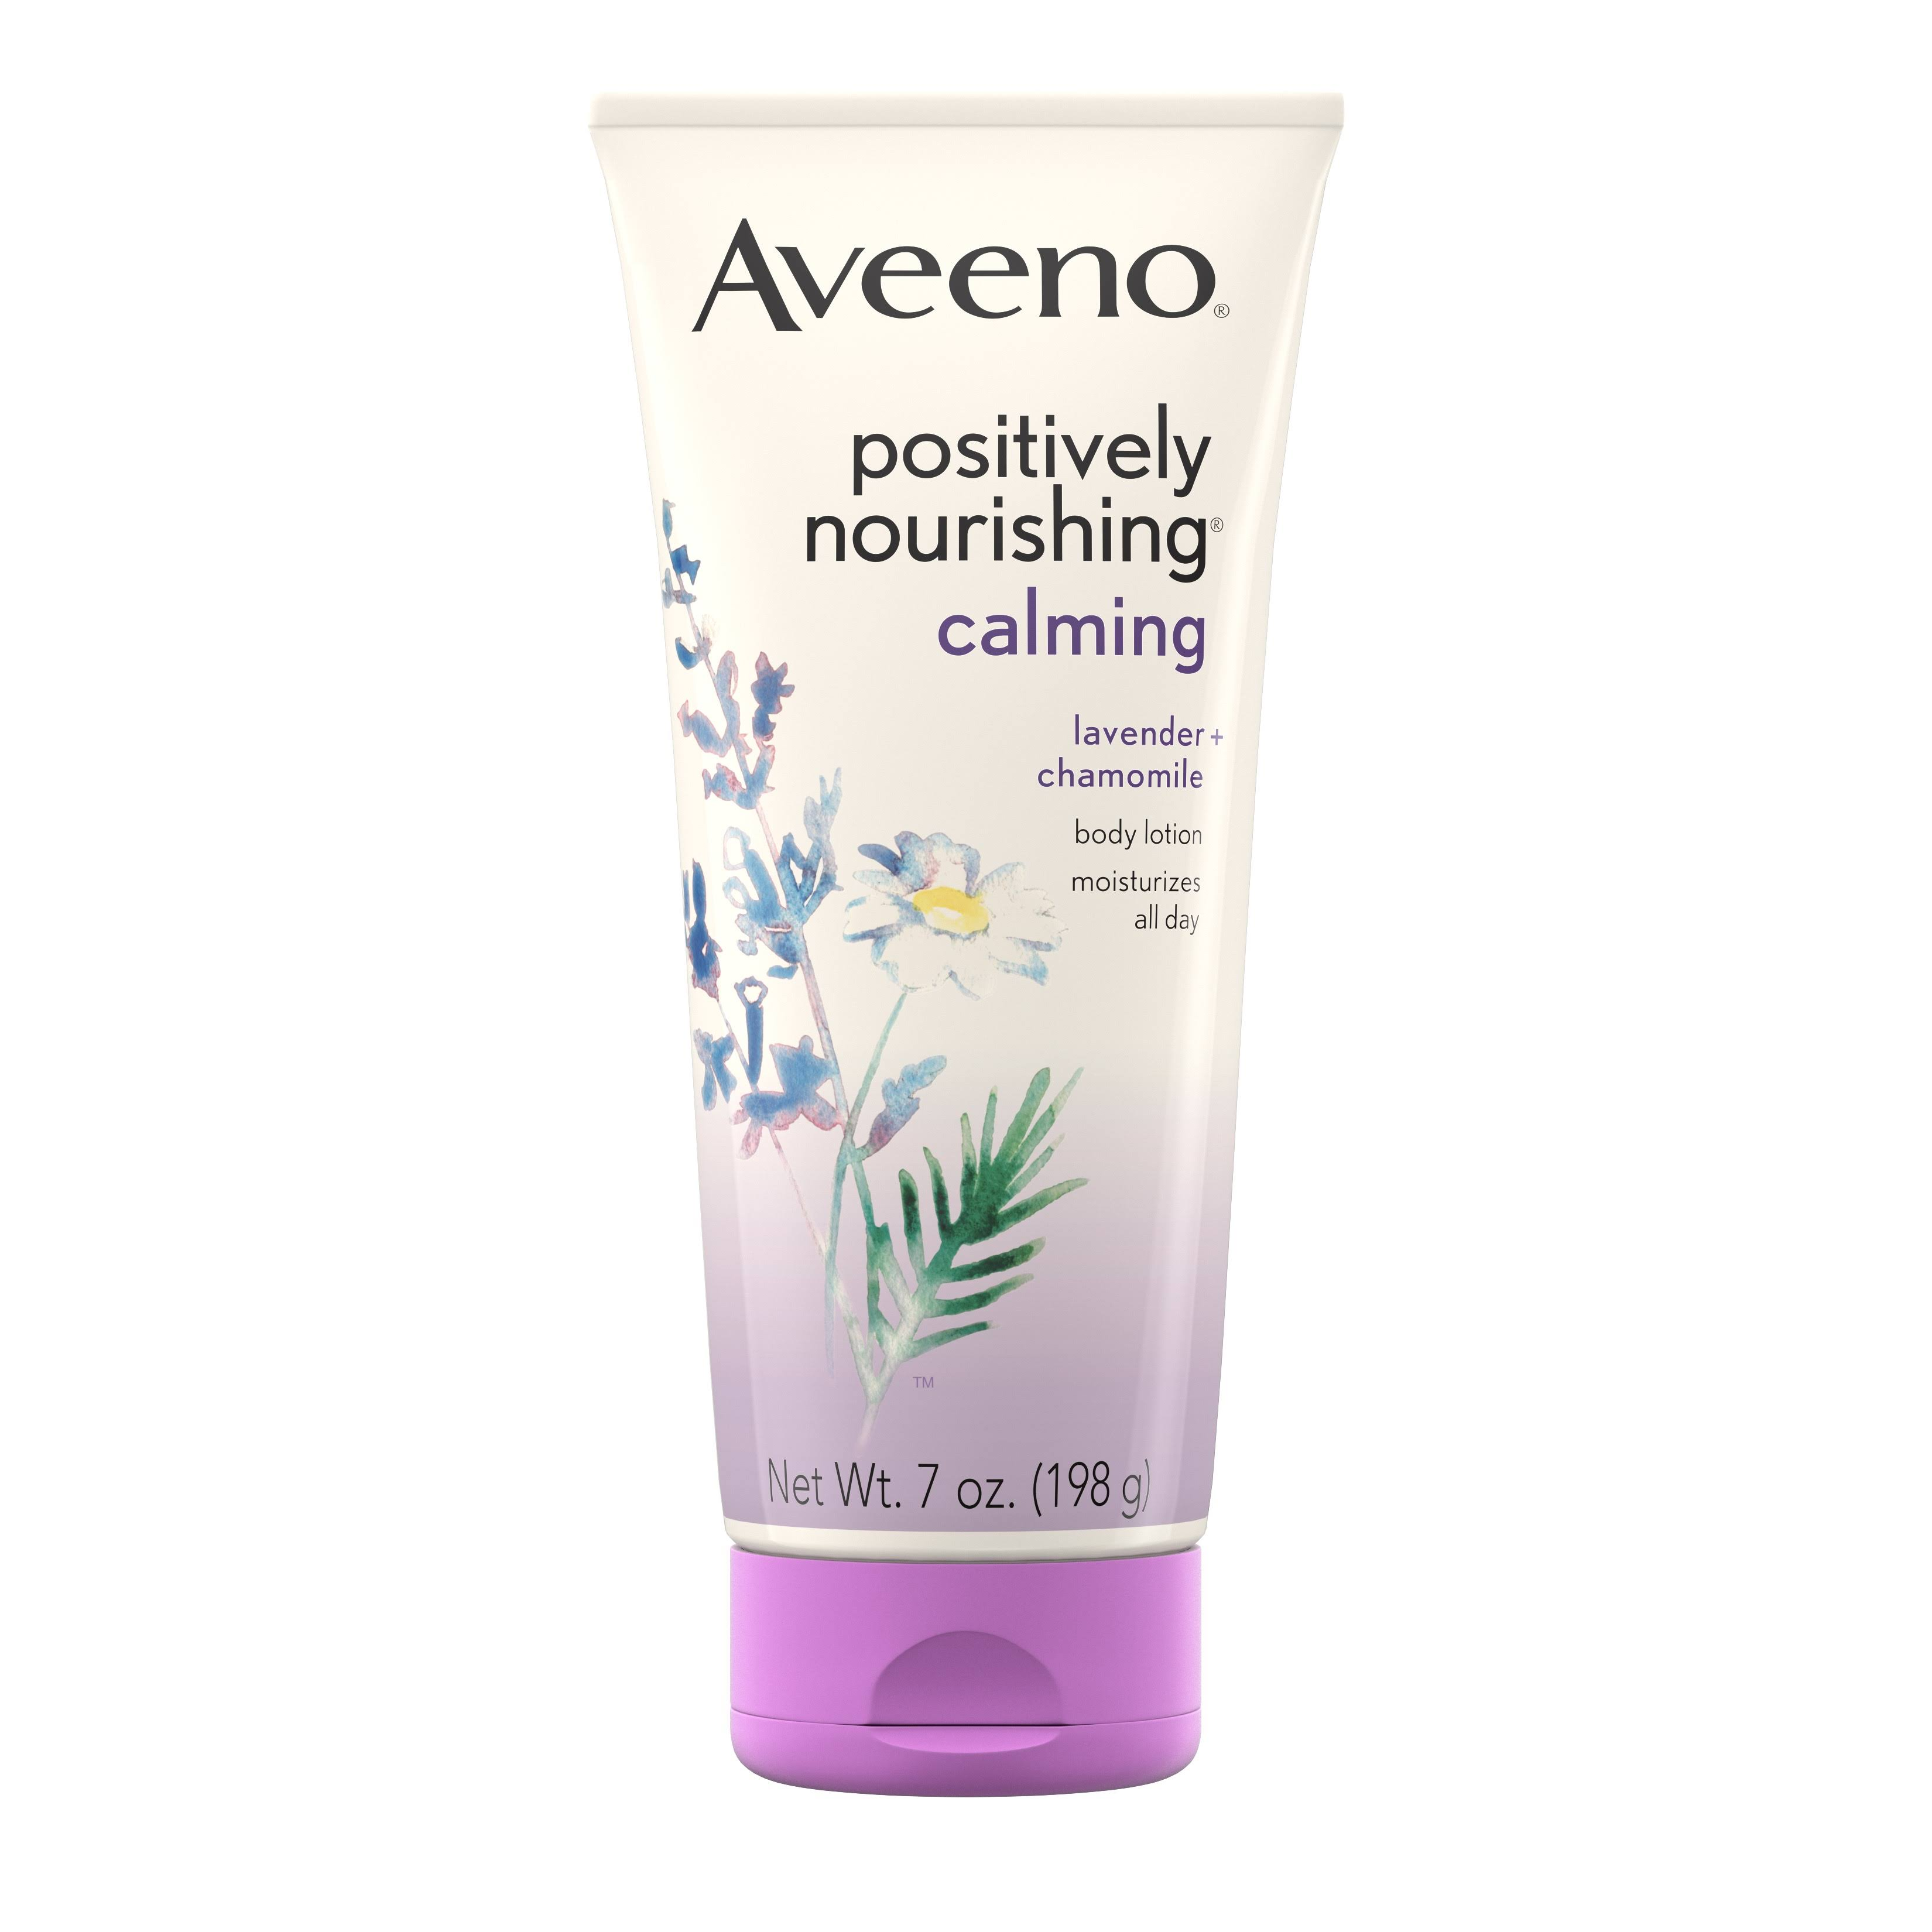 Aveeno Active Naturals Positively Nourishing Calming Body Lotion - 7 oz